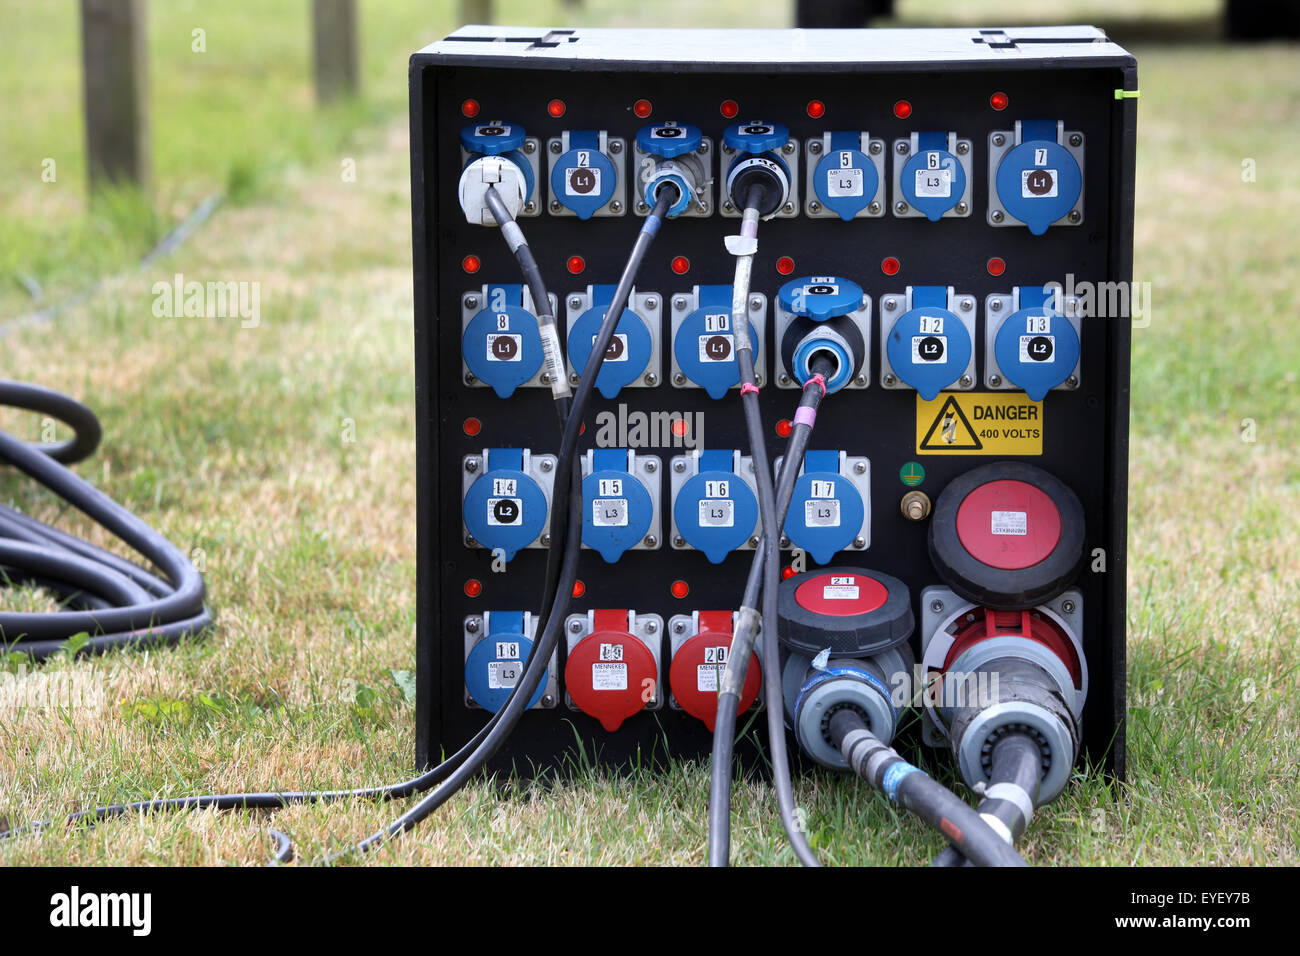 Outdoors electricity power management junction box at an outdoor event - Stock Image